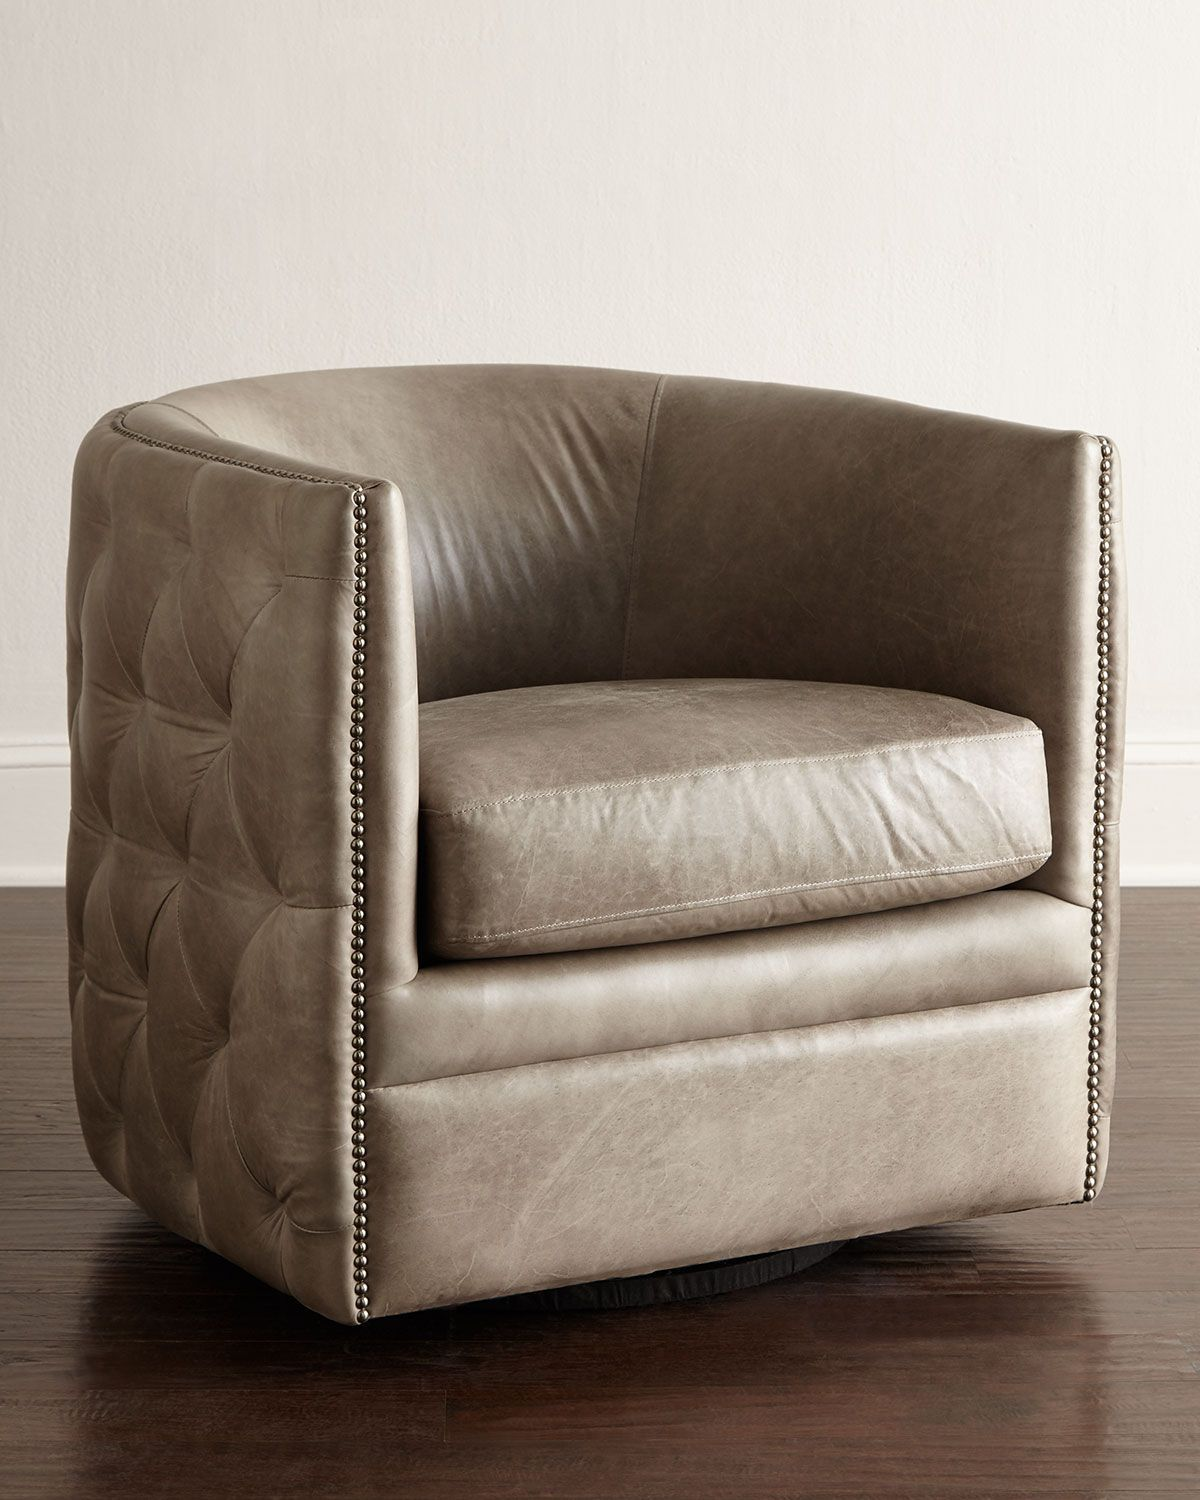 Bernhardt Abriola Leather Swivel Chair | Sillas y Sillones